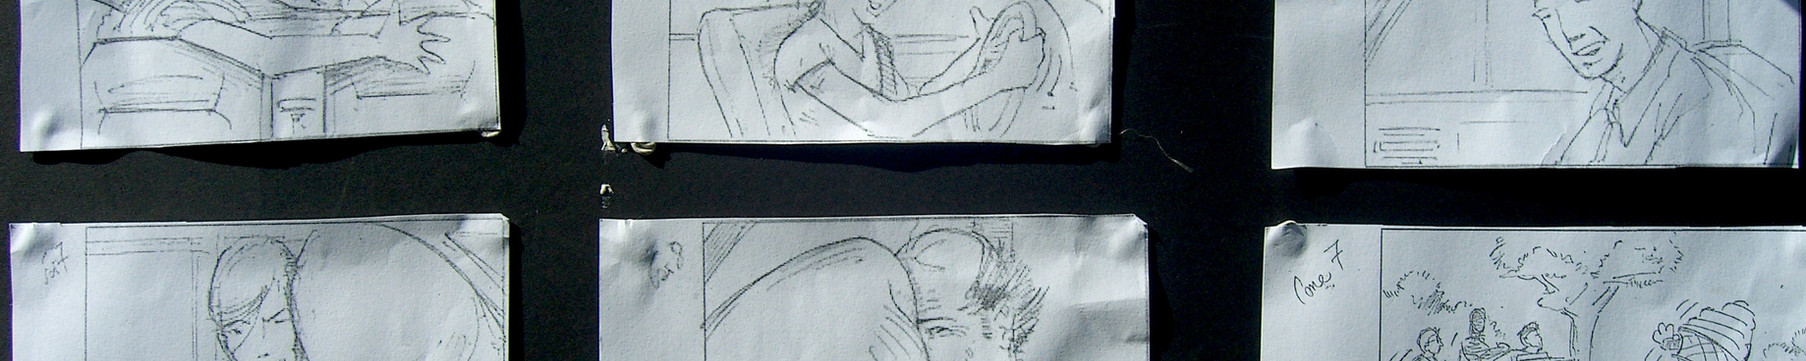 Storyboard for Baskin-Robbins commercial